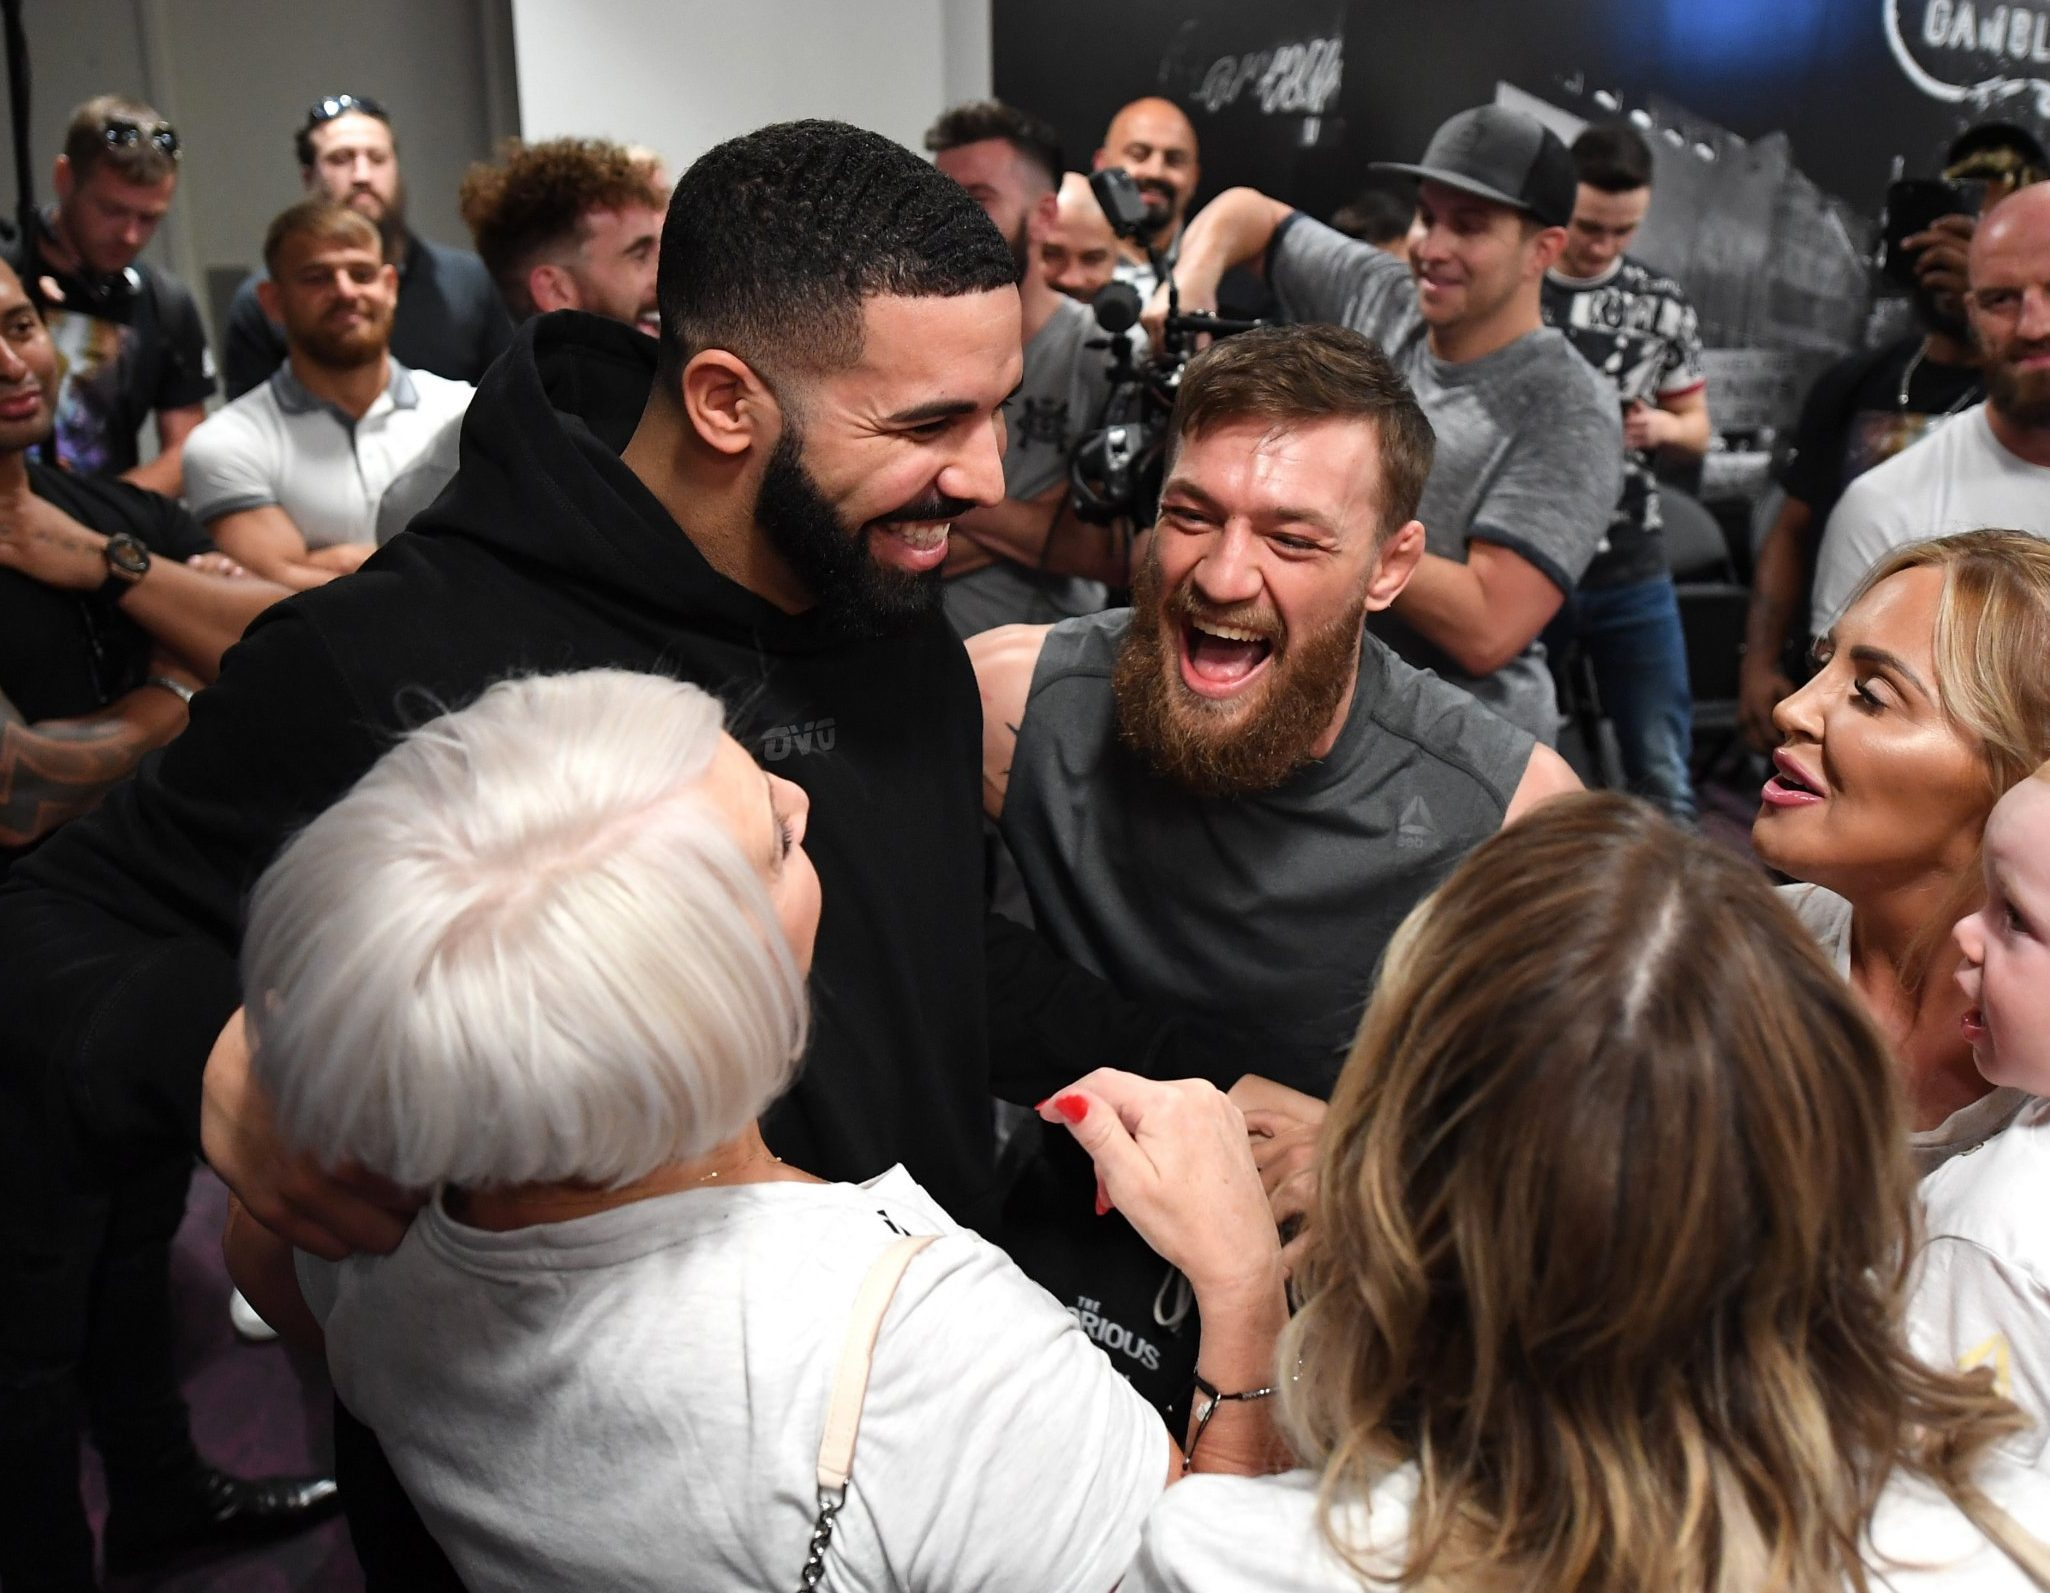 LAS VEGAS, NV - OCTOBER 05: Singer Drake (L) meets backstage with Conor McGregor of Ireland during the UFC 229 weigh-in inside T-Mobile Arena on October 5, 2018 in Las Vegas, Nevada. (Photo by Jeff Bottari/Zuffa LLC/Zuffa LLC via Getty Images)